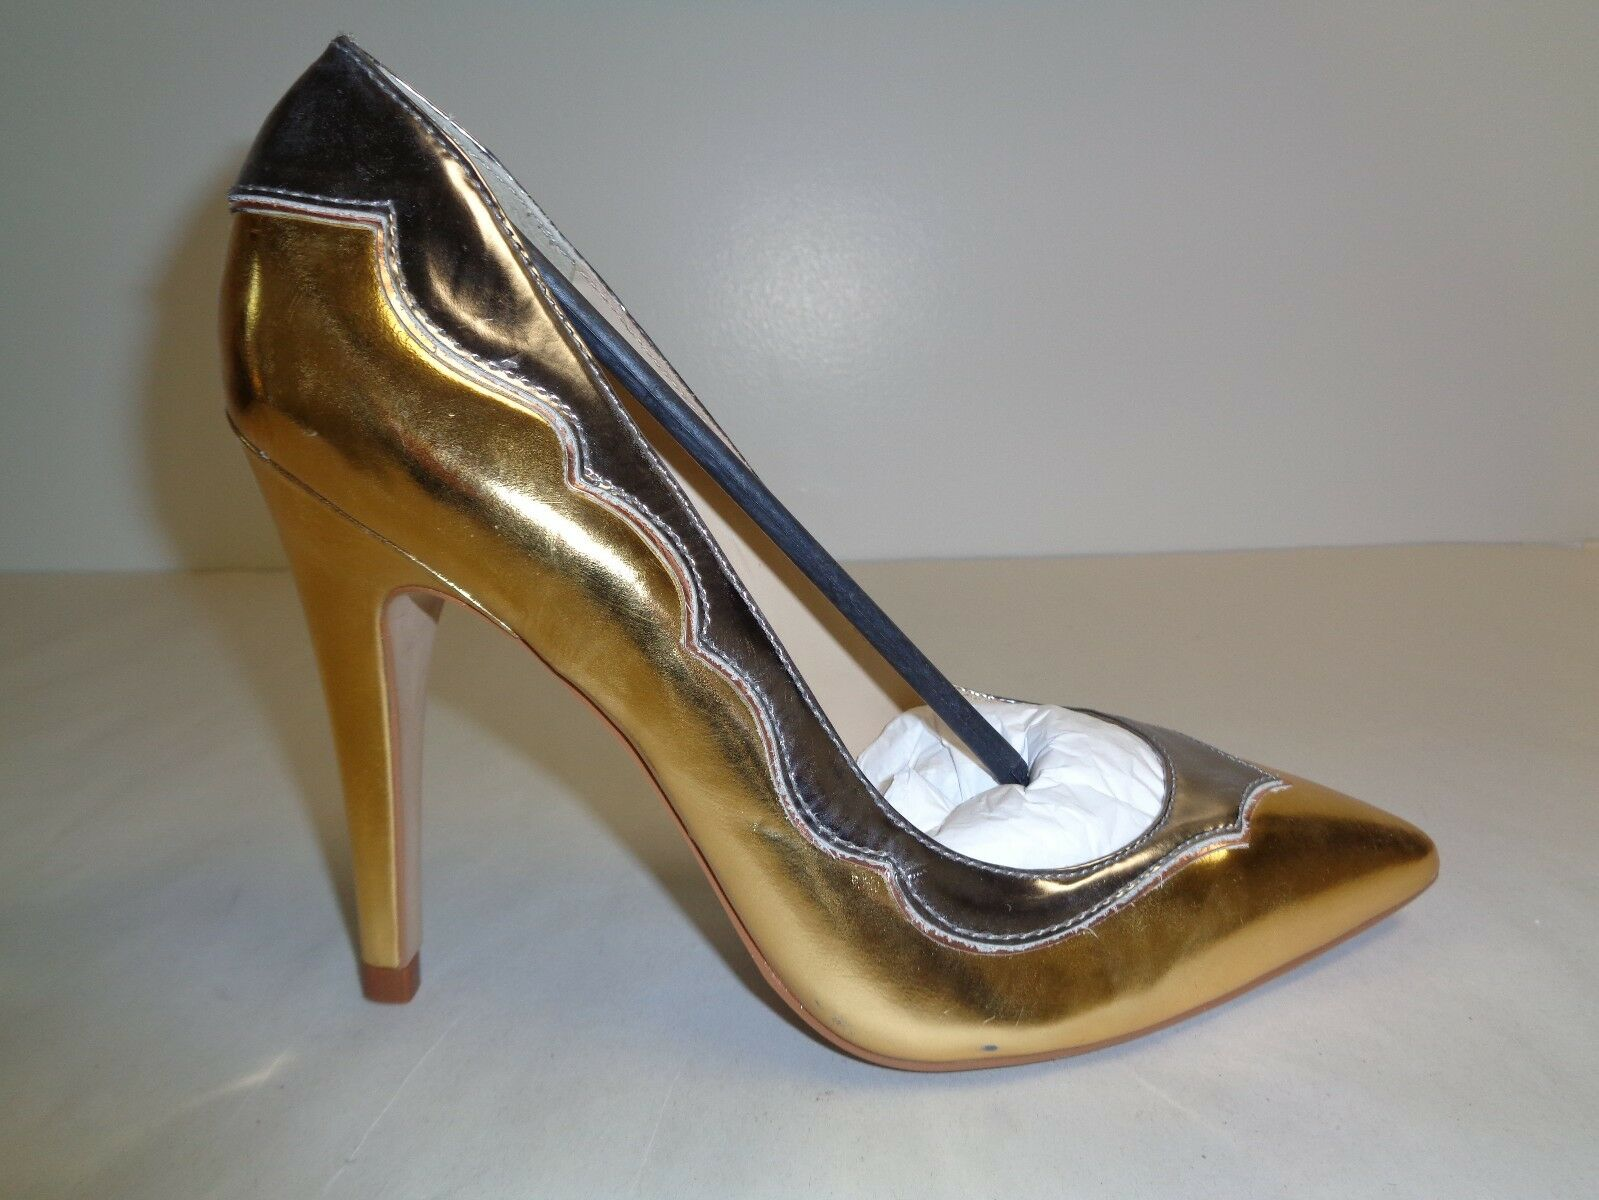 Amiana Size 8 12-10172 Gold Pewter Pelle Pumps Heels New Donna Shoes